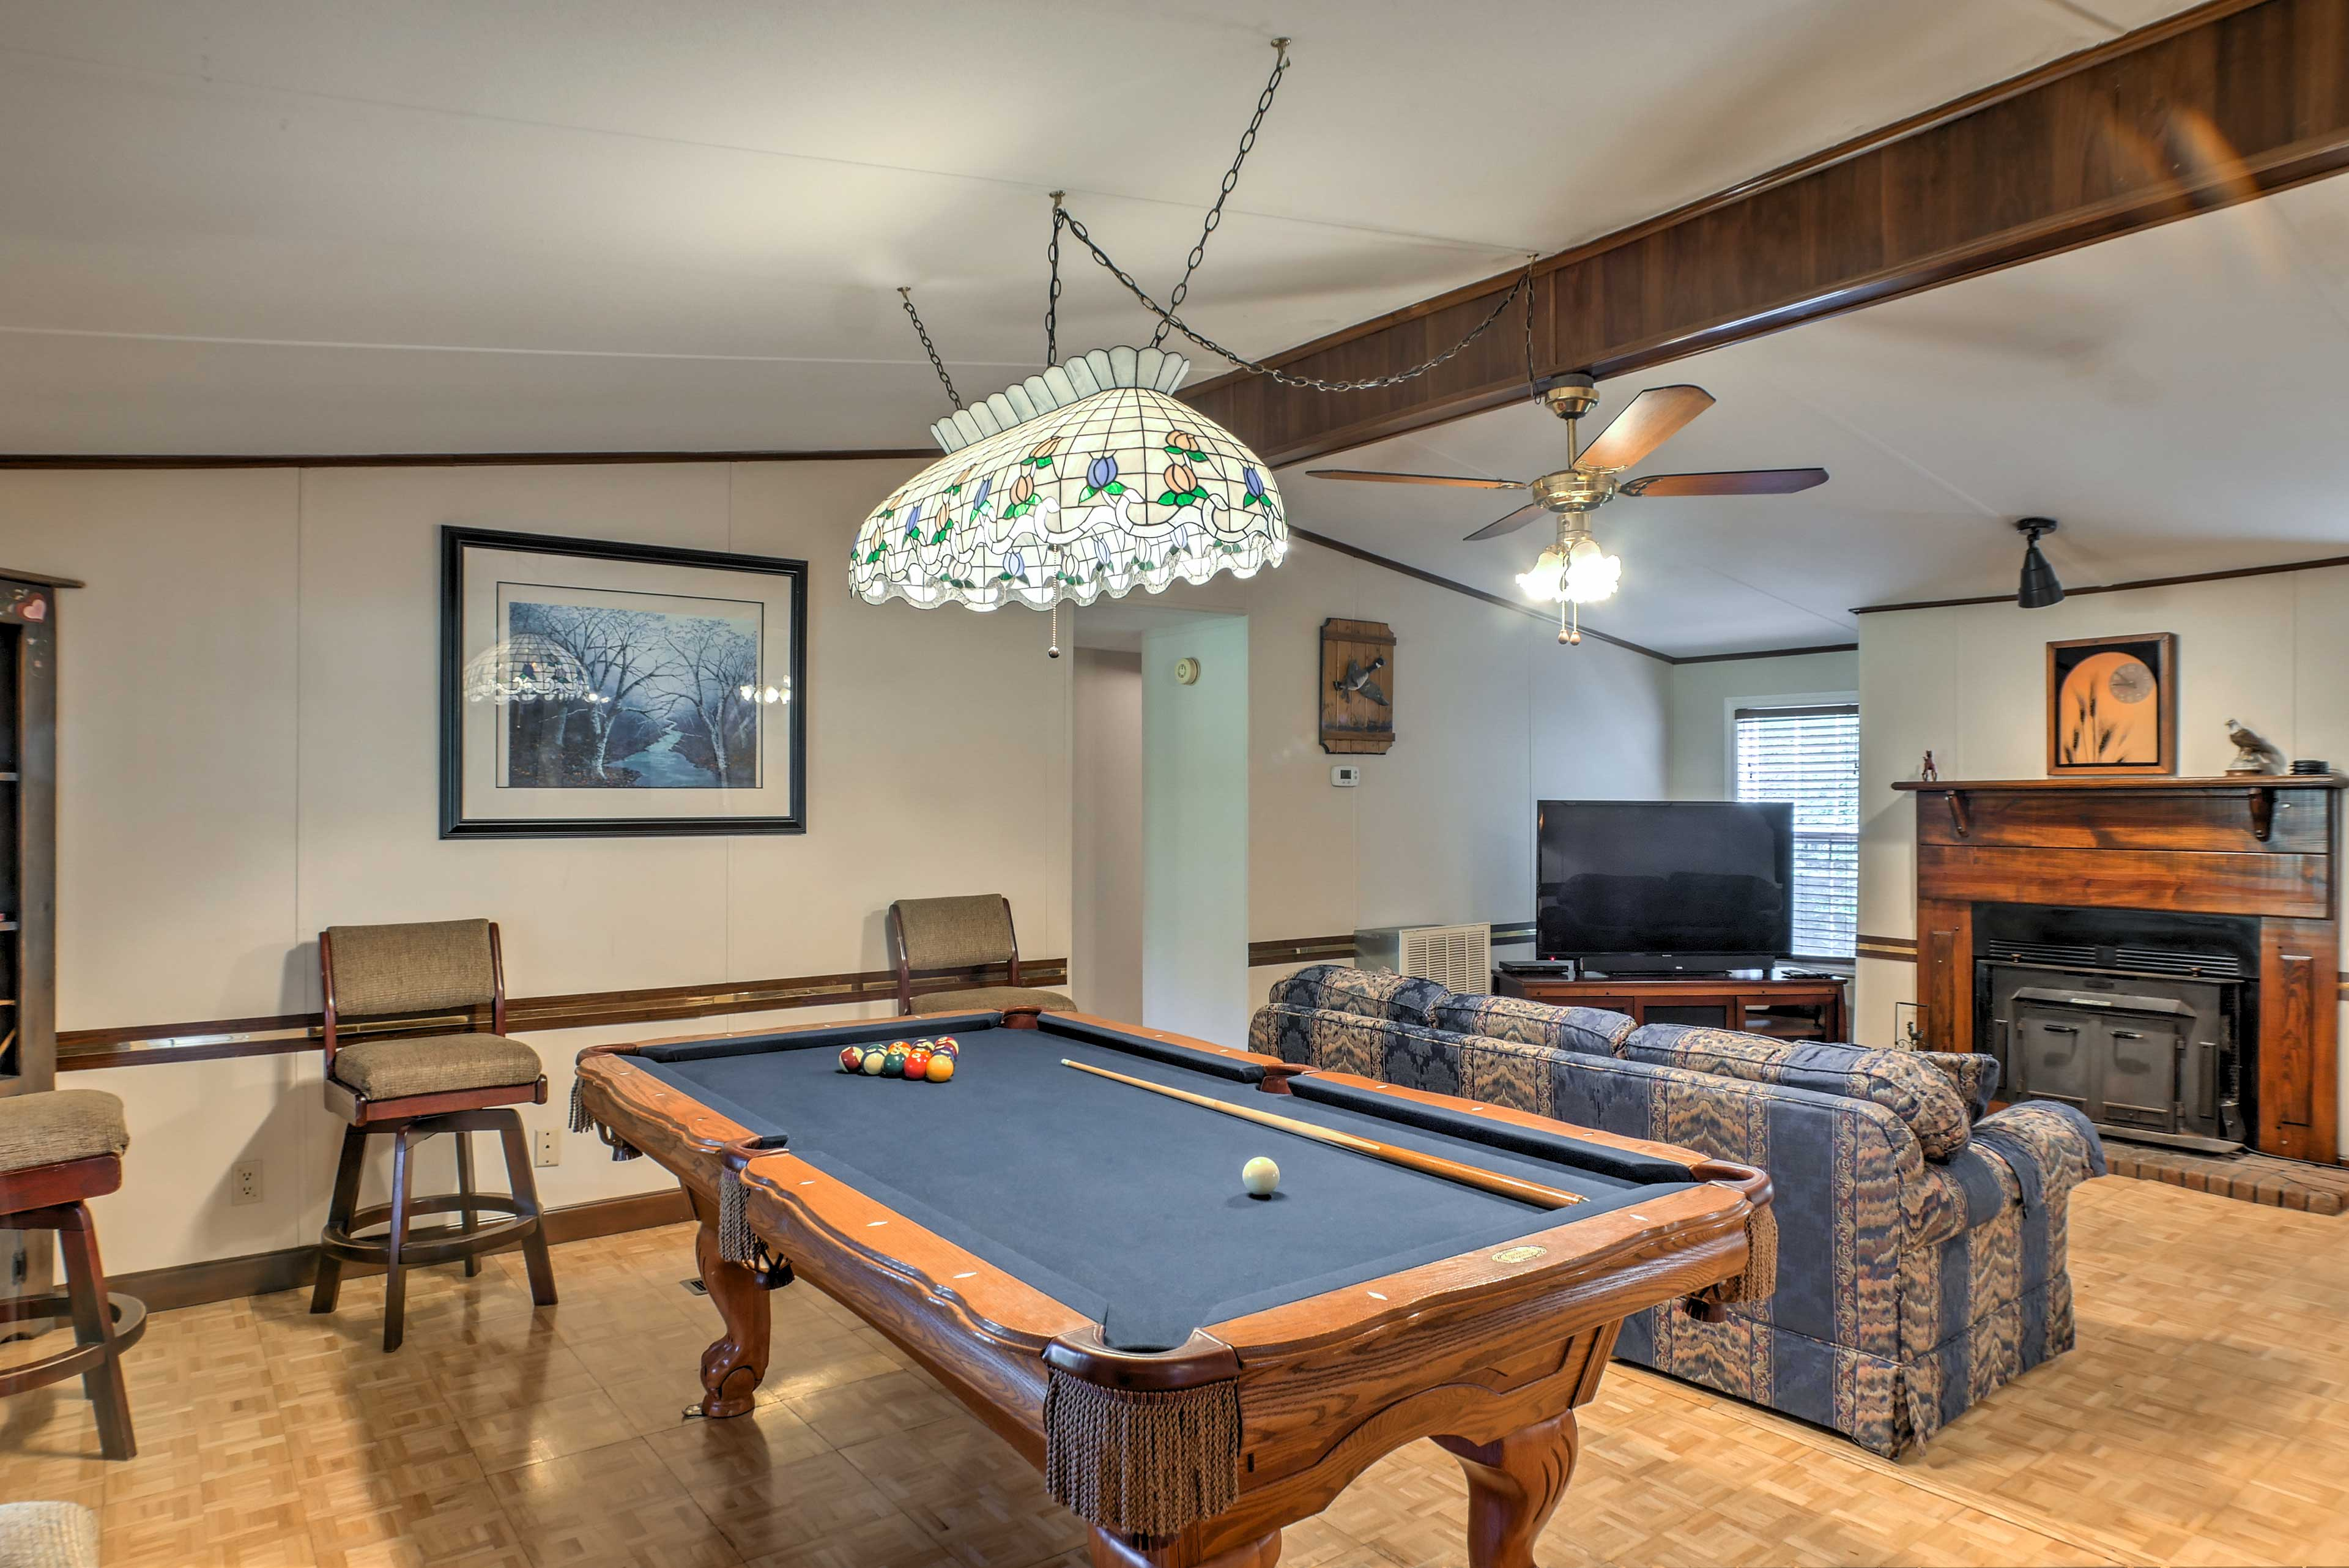 Hone your pool shots at the table in the living room.